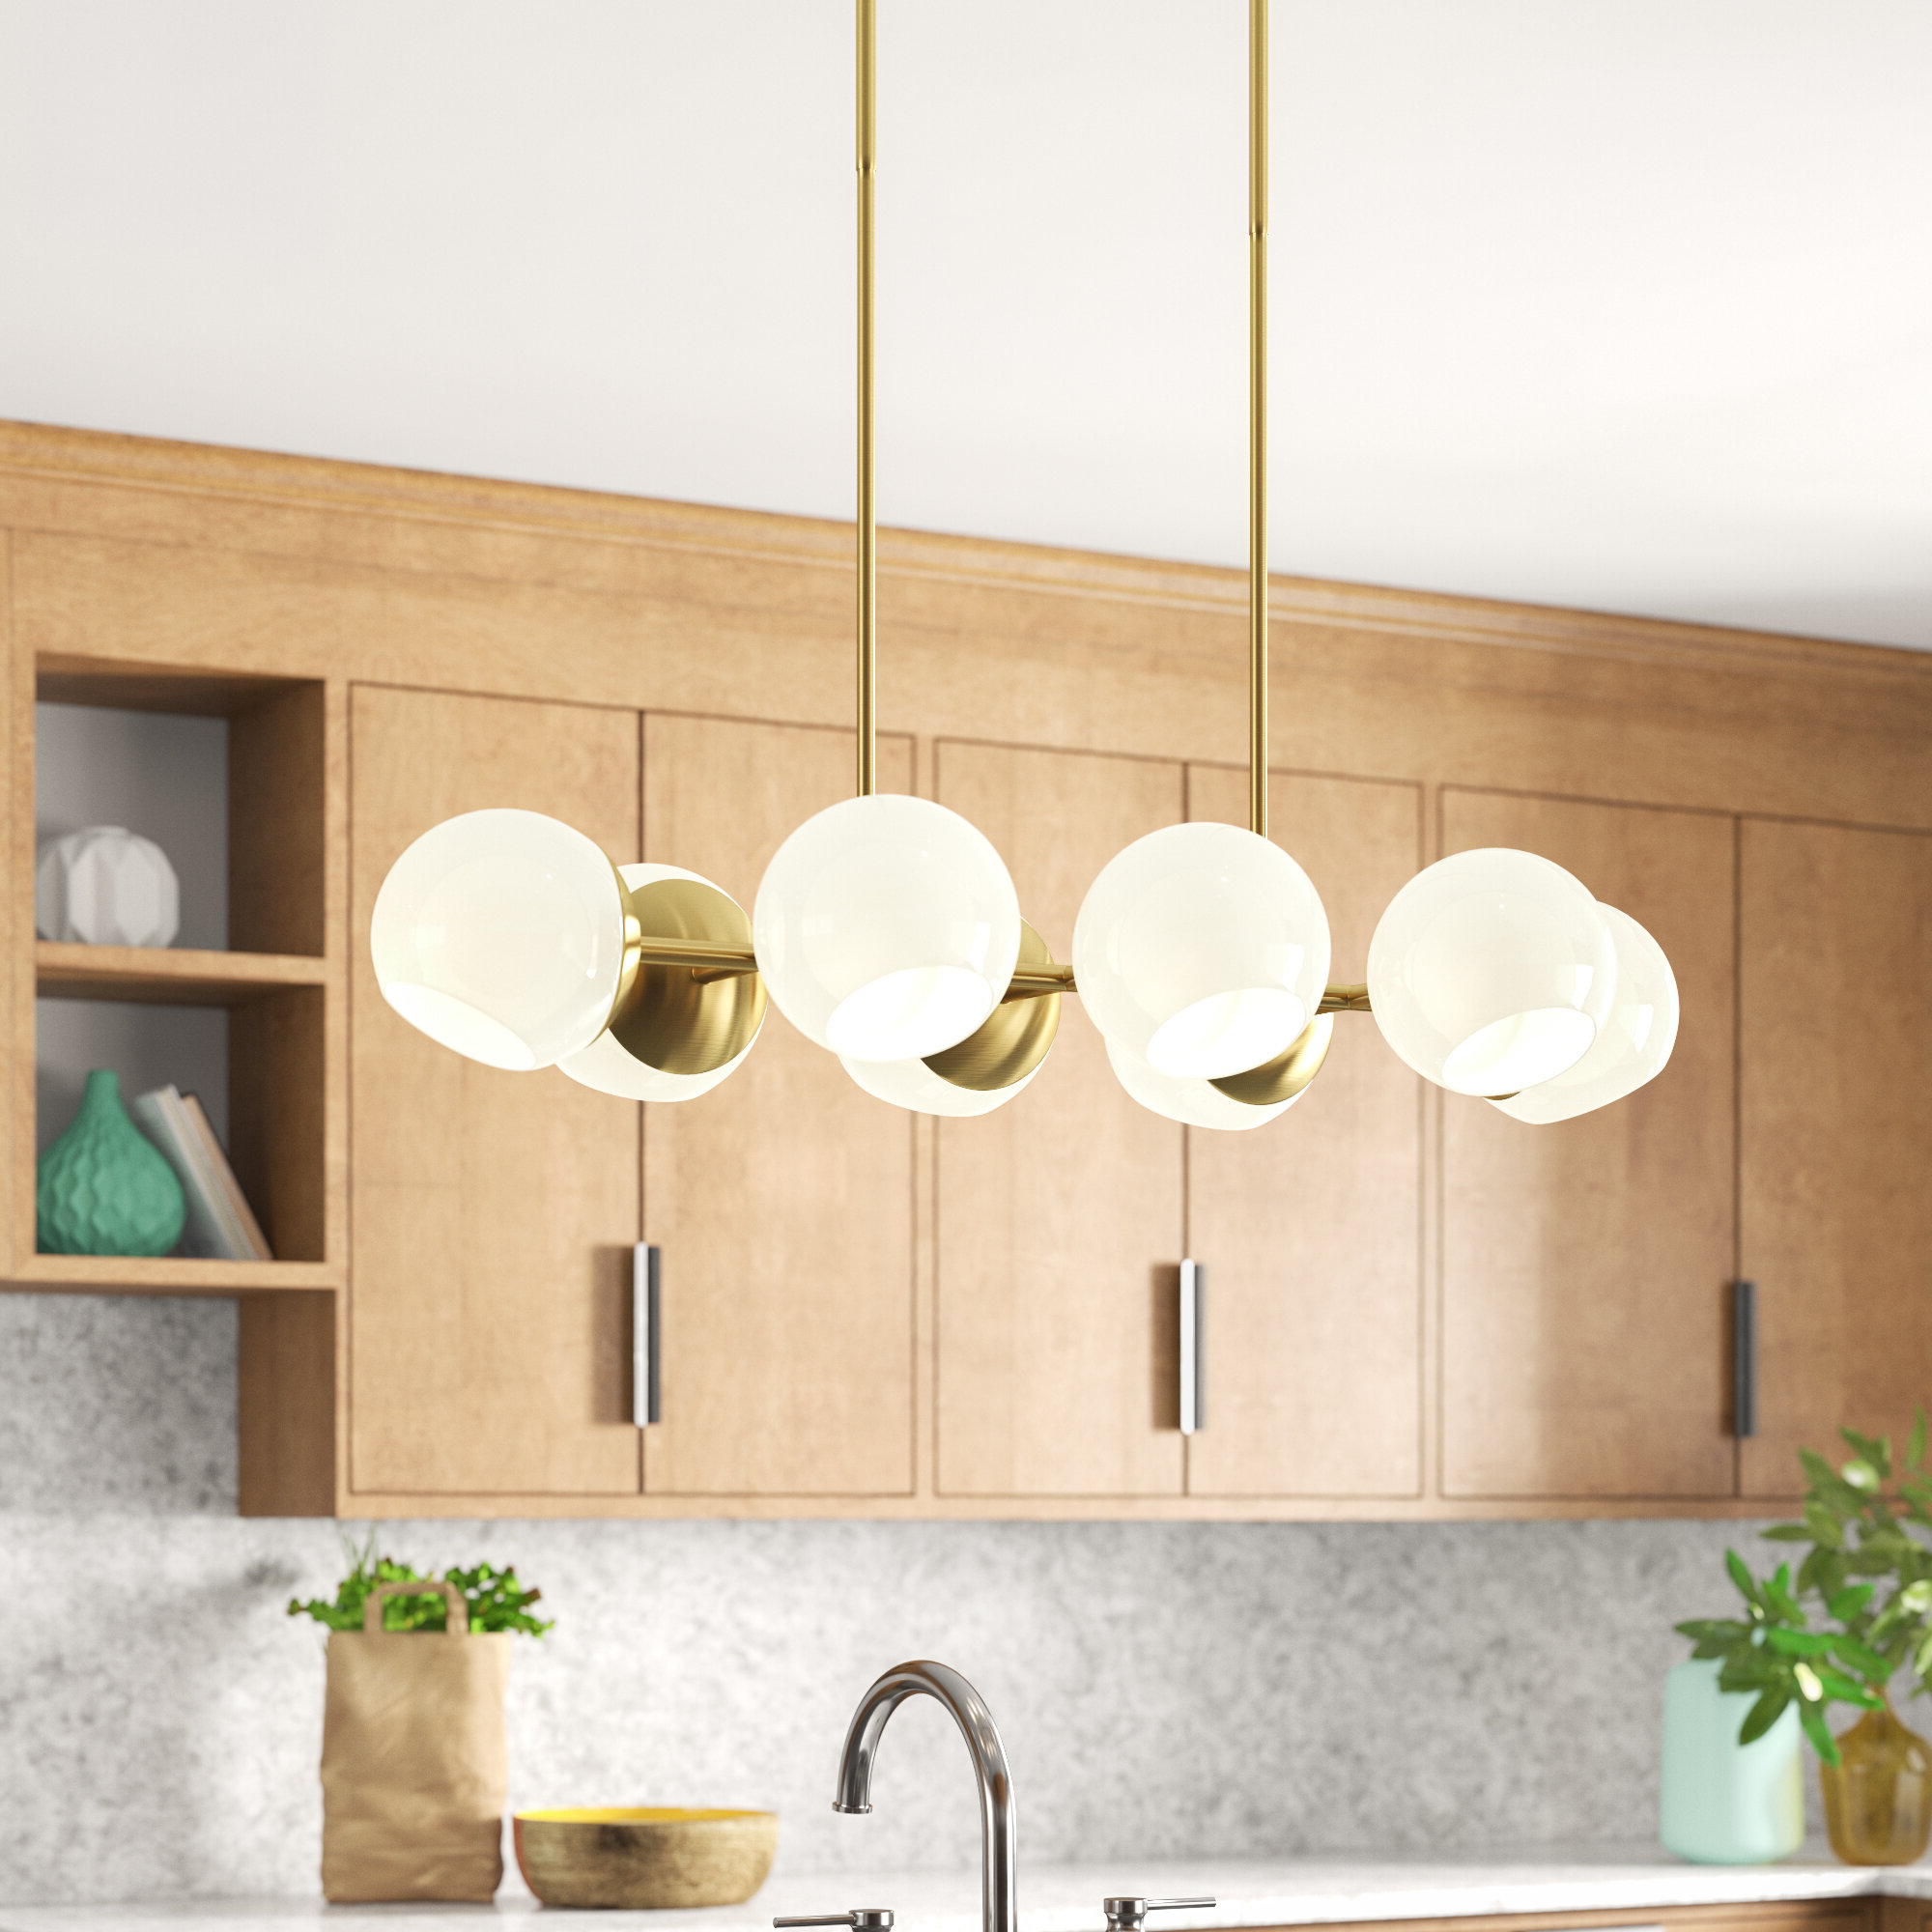 Widely Used Ashley 8 Light Kitchen Island Linear Pendant Intended For Neal 9 Light Kitchen Island Teardrop Pendants (View 19 of 20)